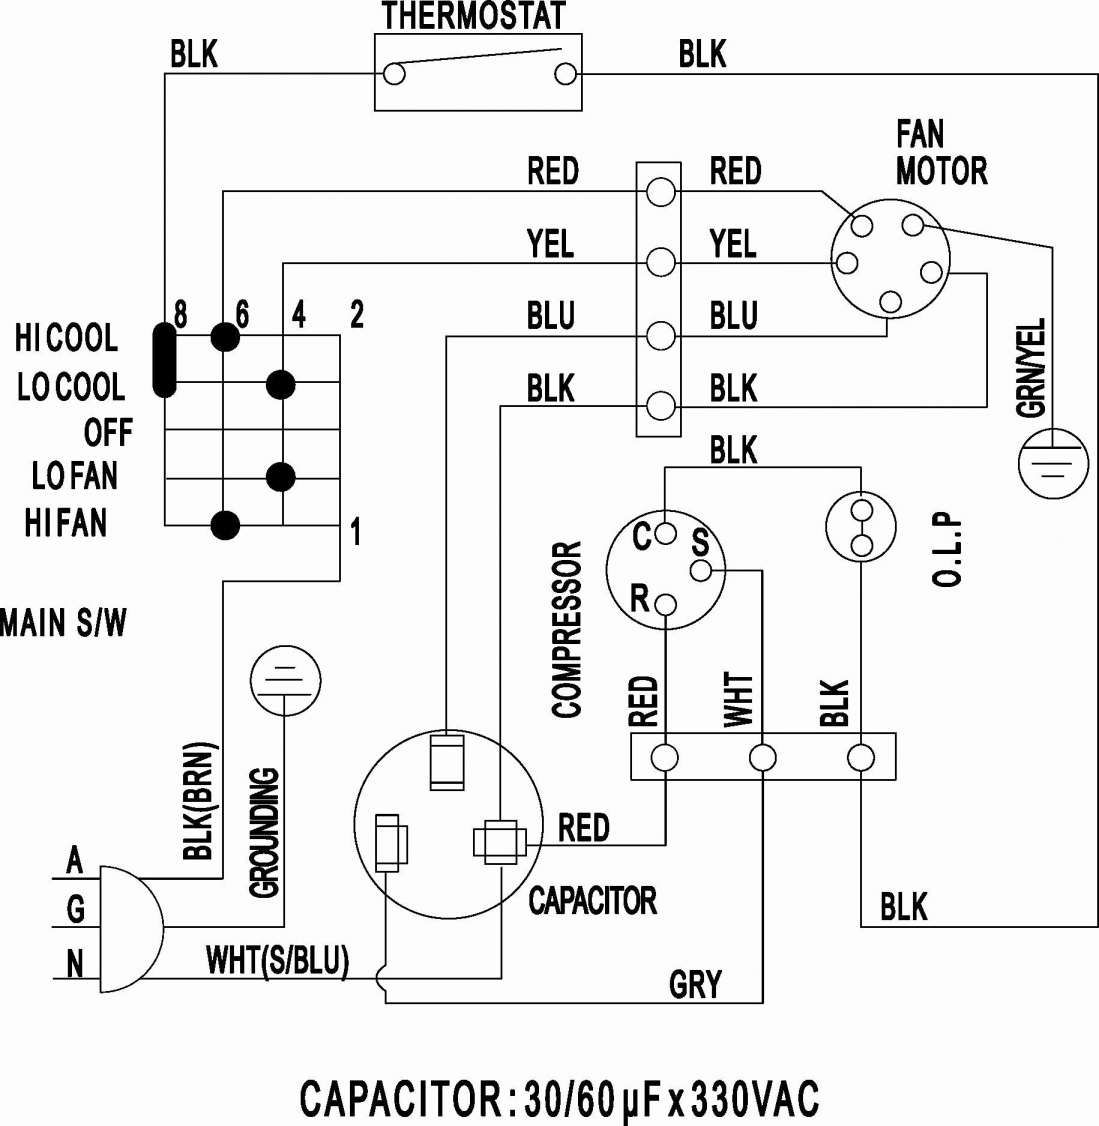 15 Basic Engine Wiring Diagram